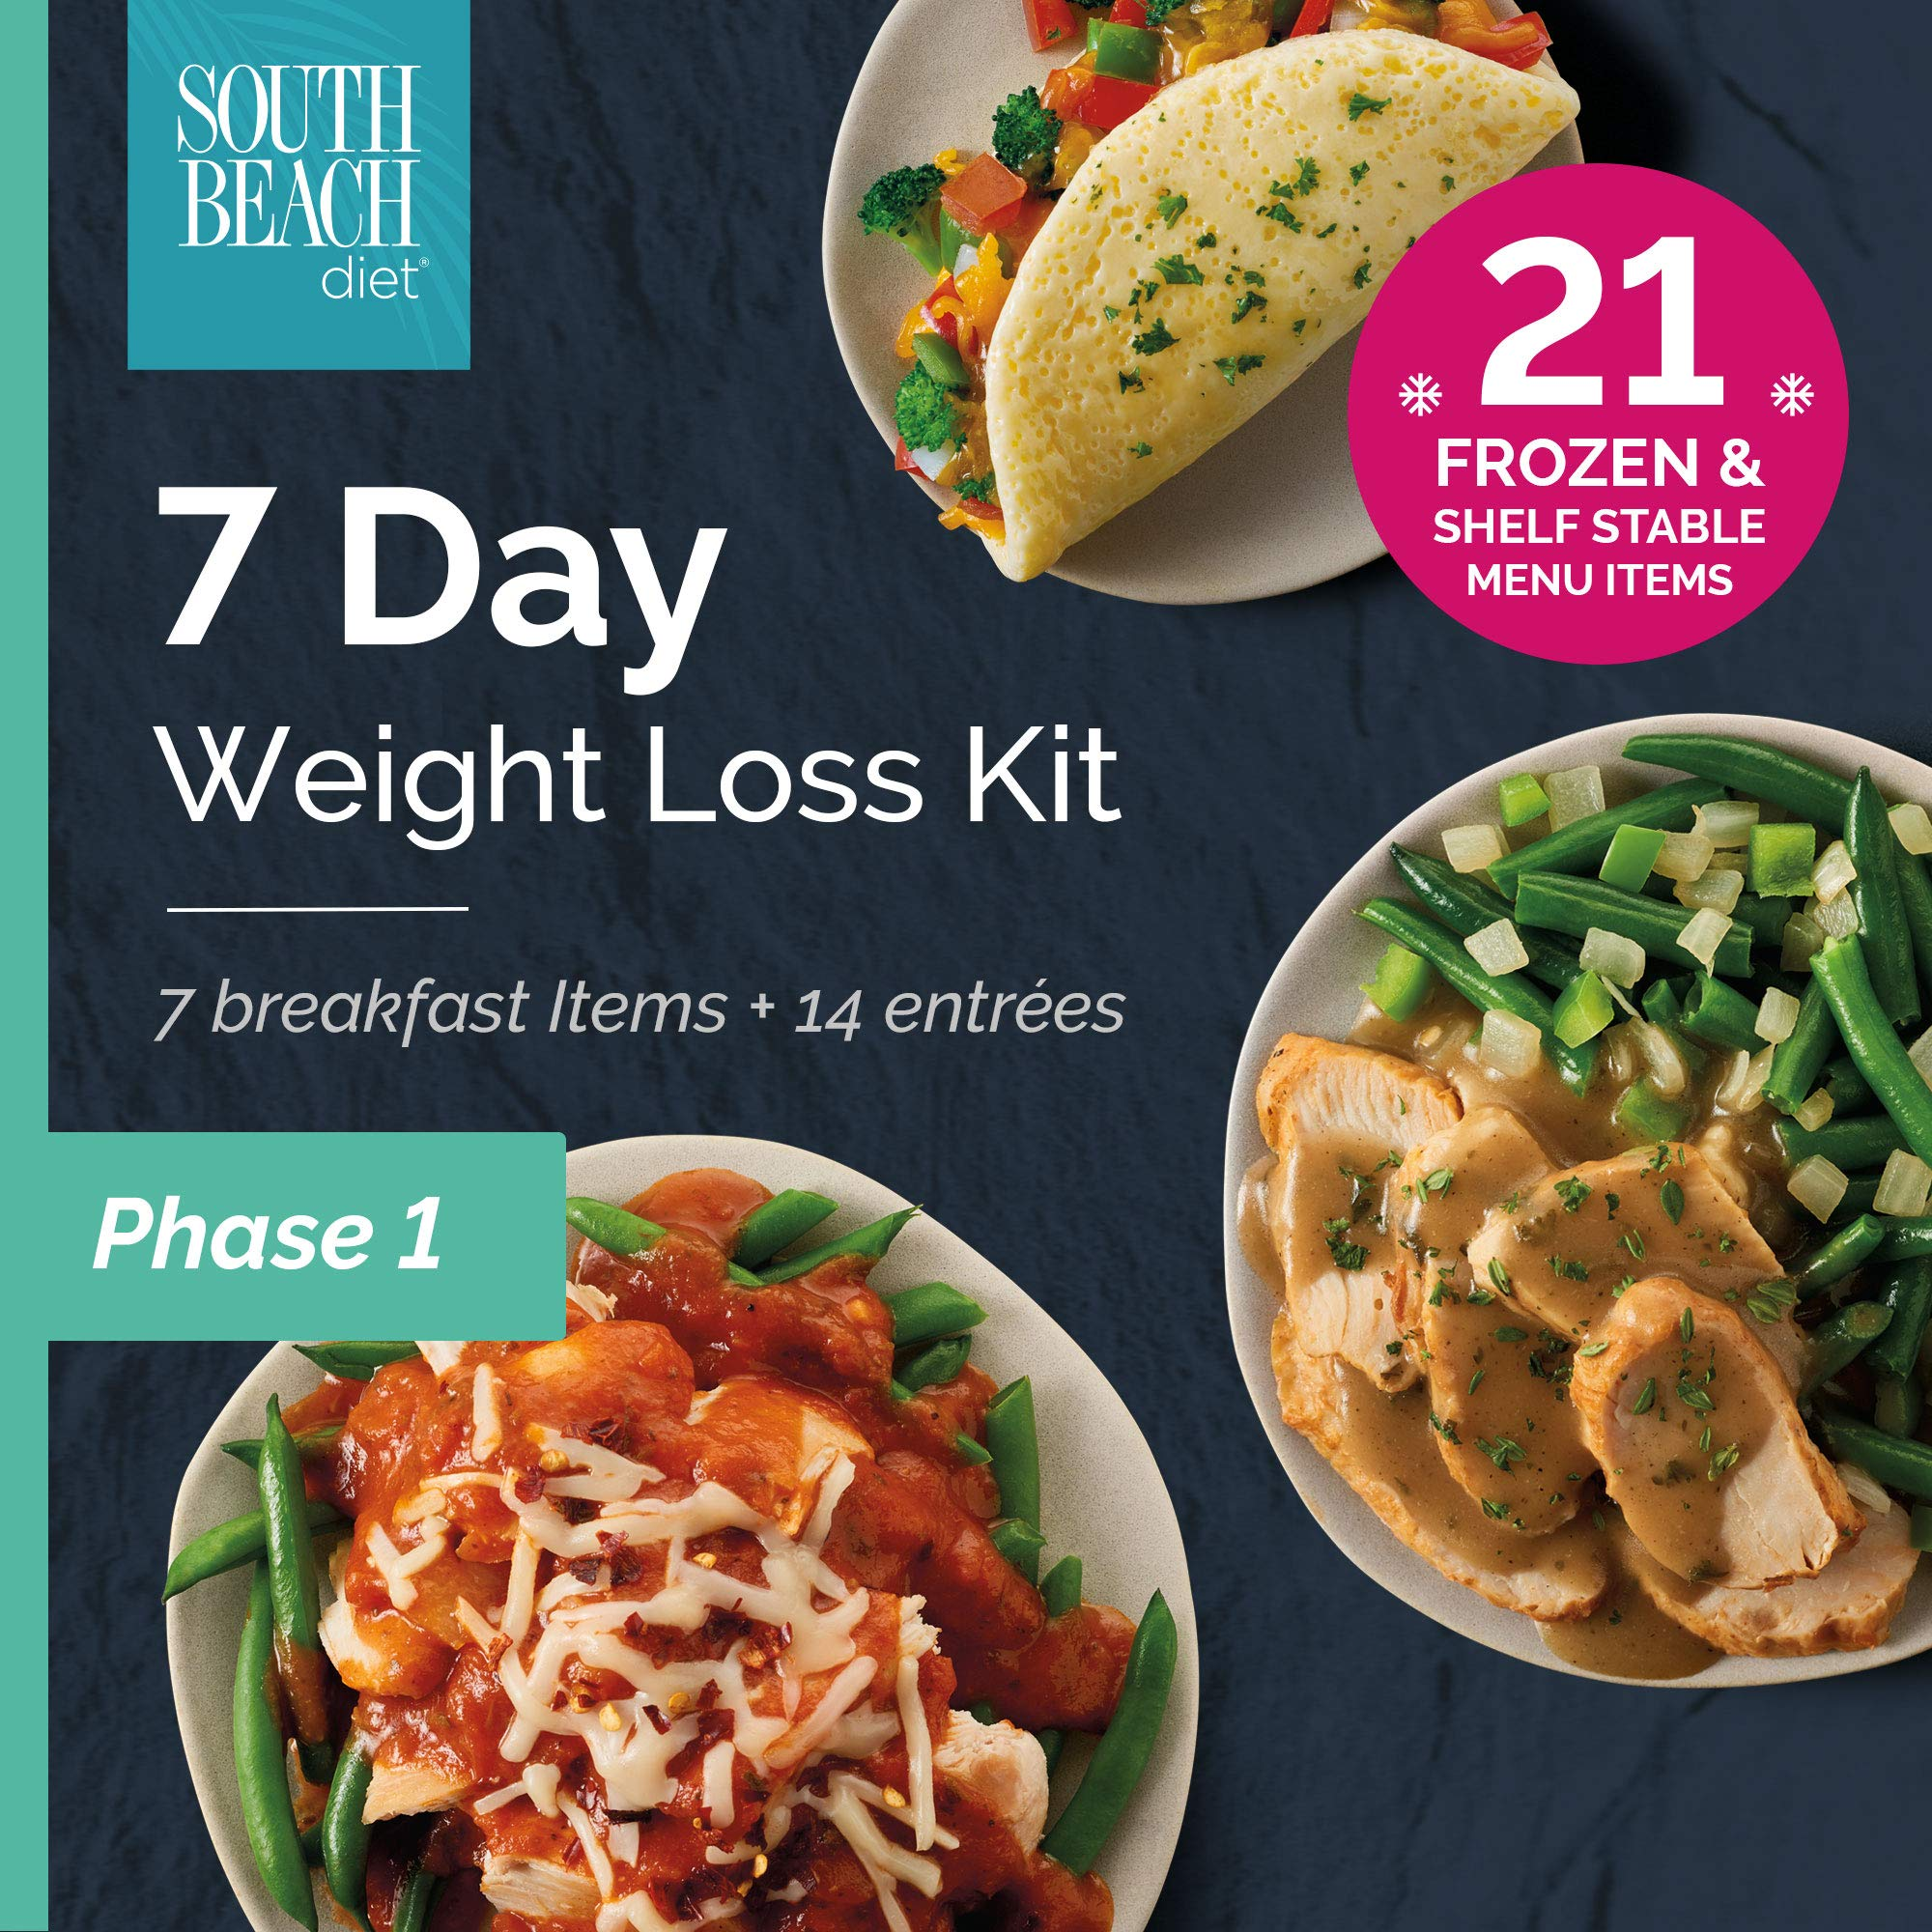 South Beach Diet® Phase 1 Frozen + Ready-to-go 7-Day Weight Loss Kit - Keto-Friendly! by Nutrisystem